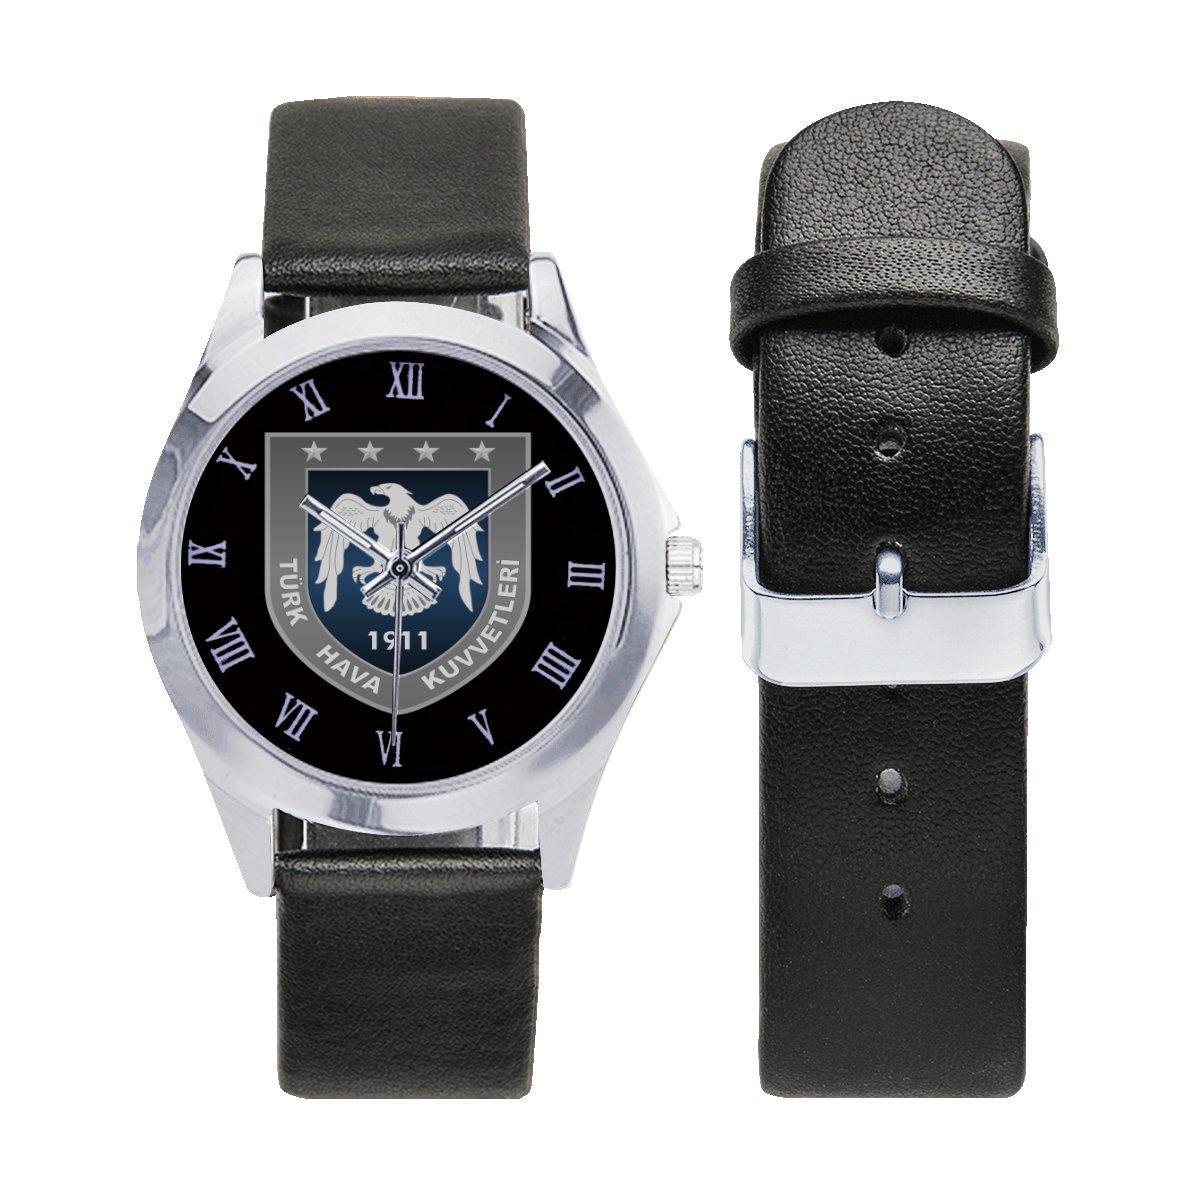 Turk Turkish Air Force Army Watches Leather Strap Watch Men Women Wrist Watches a perfect accessory